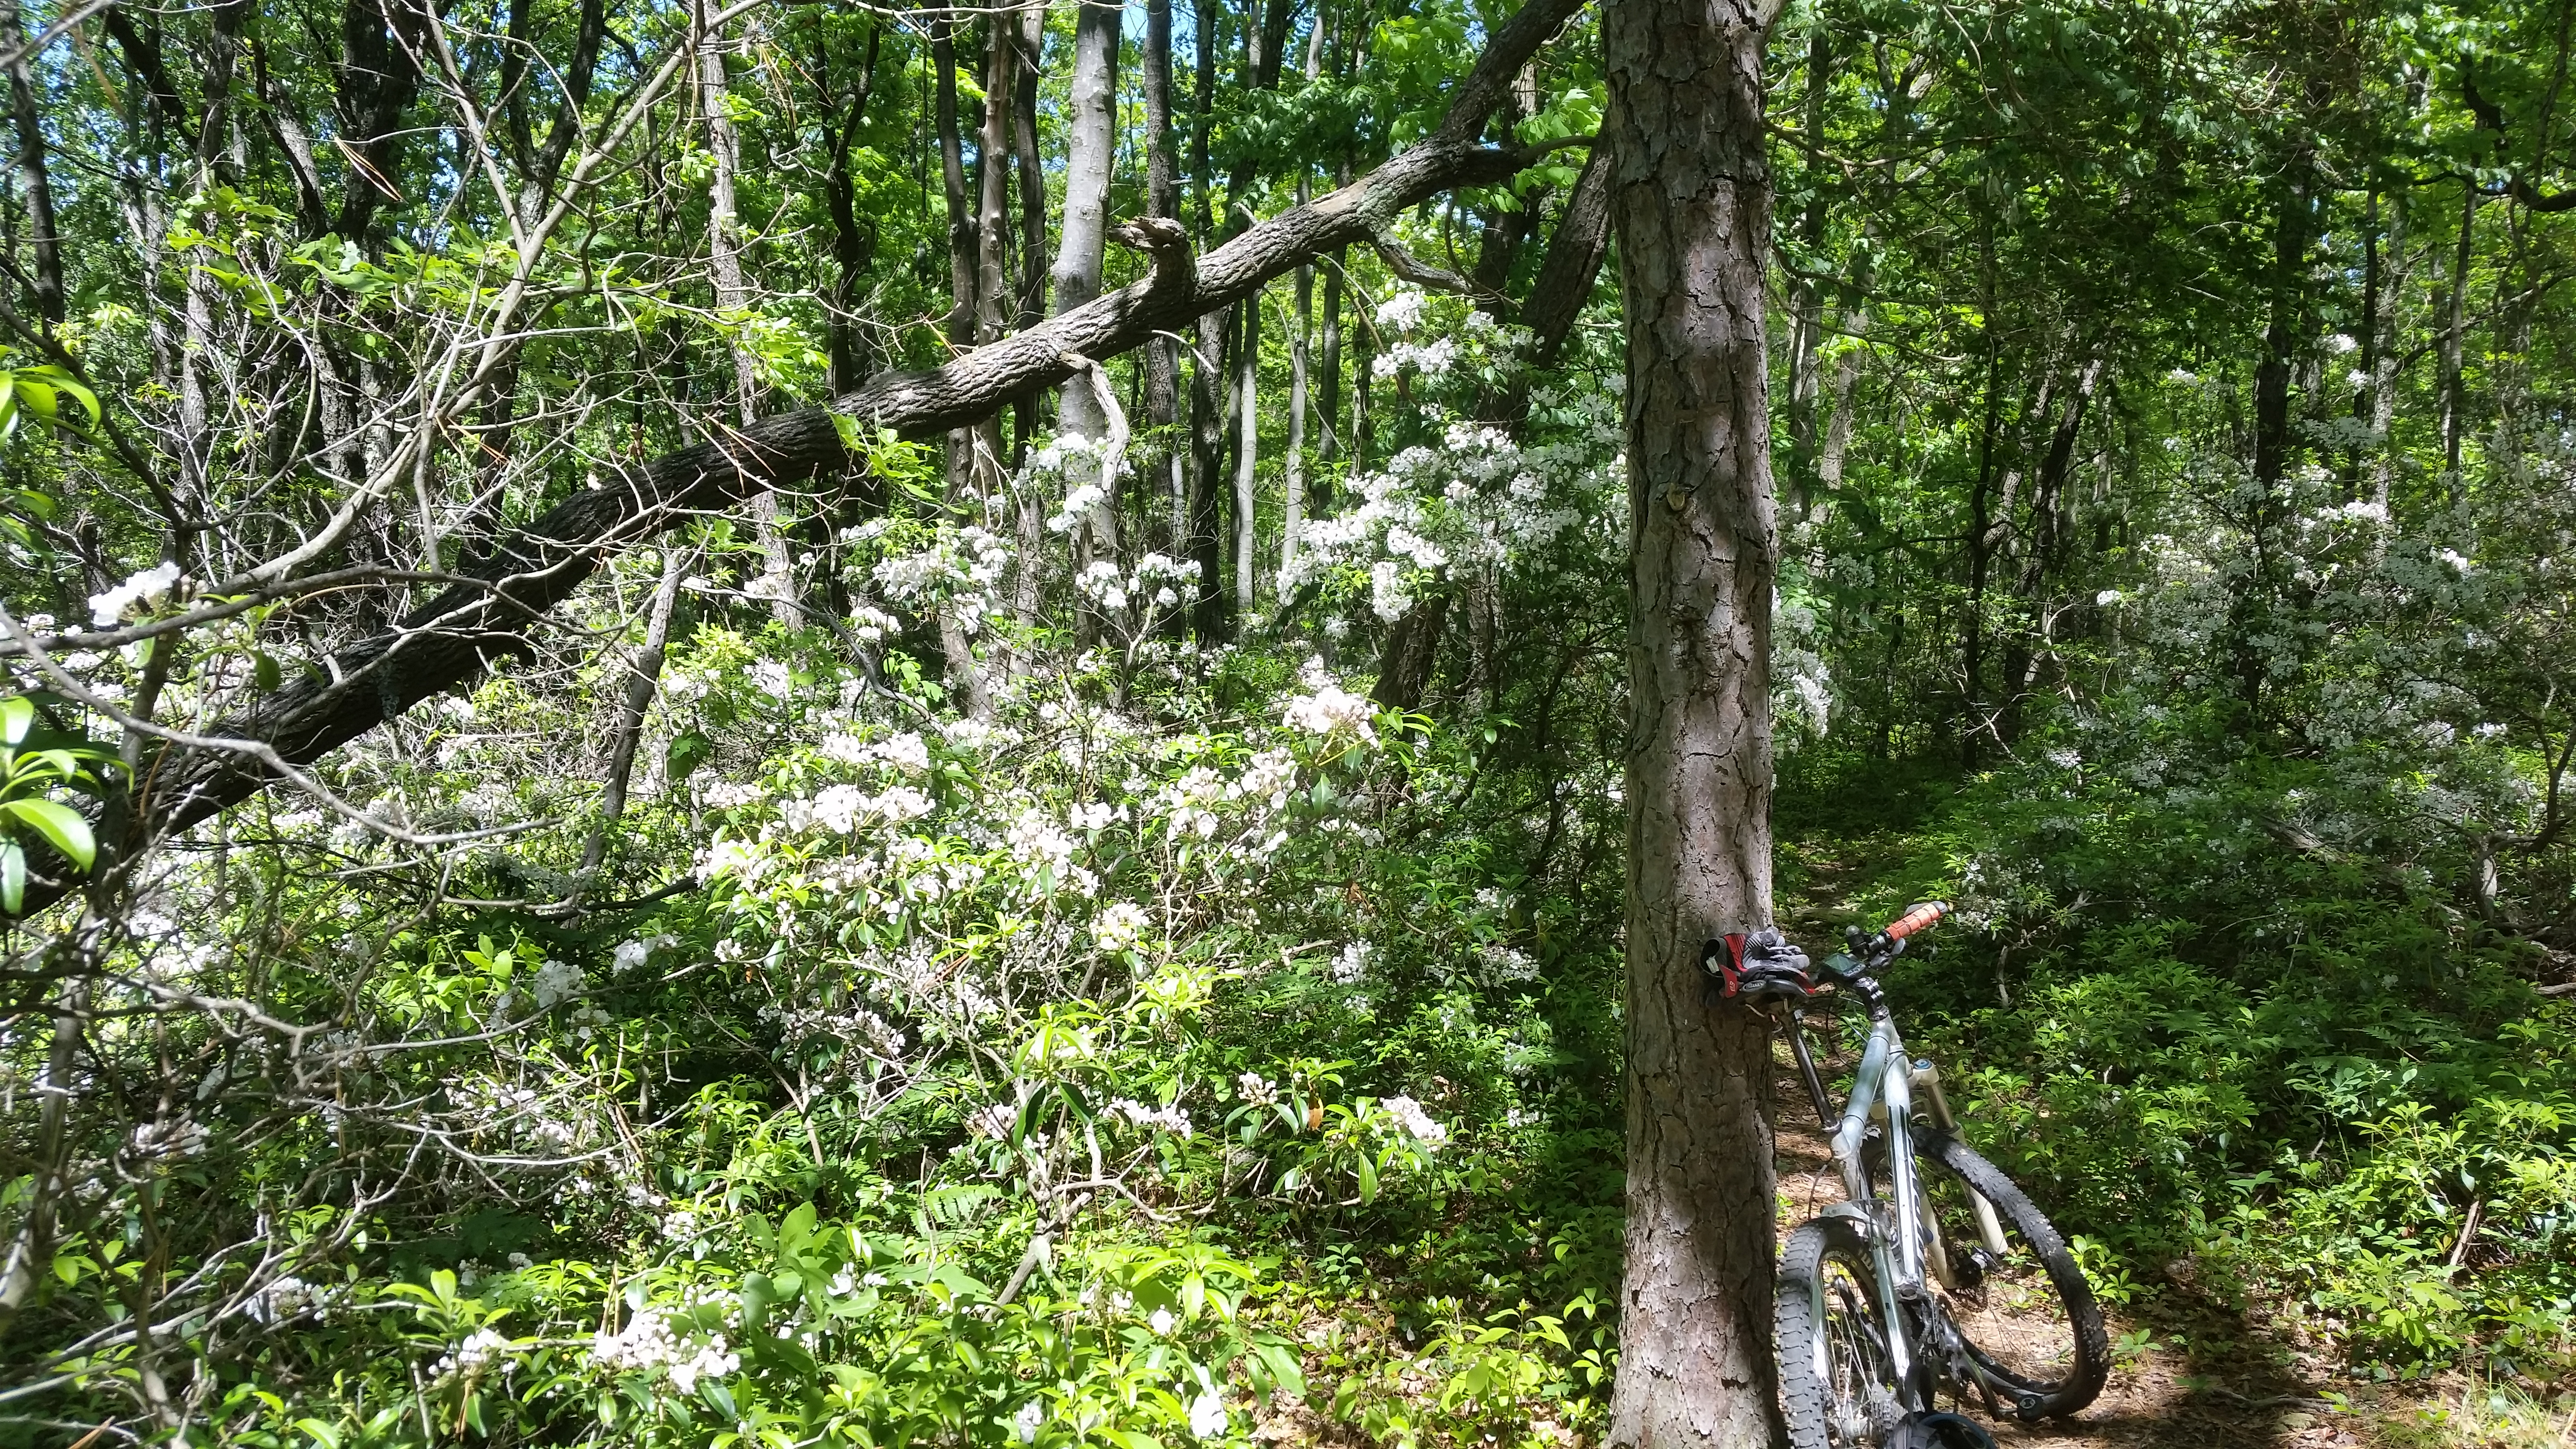 Blooming mountain laurel and bicycle